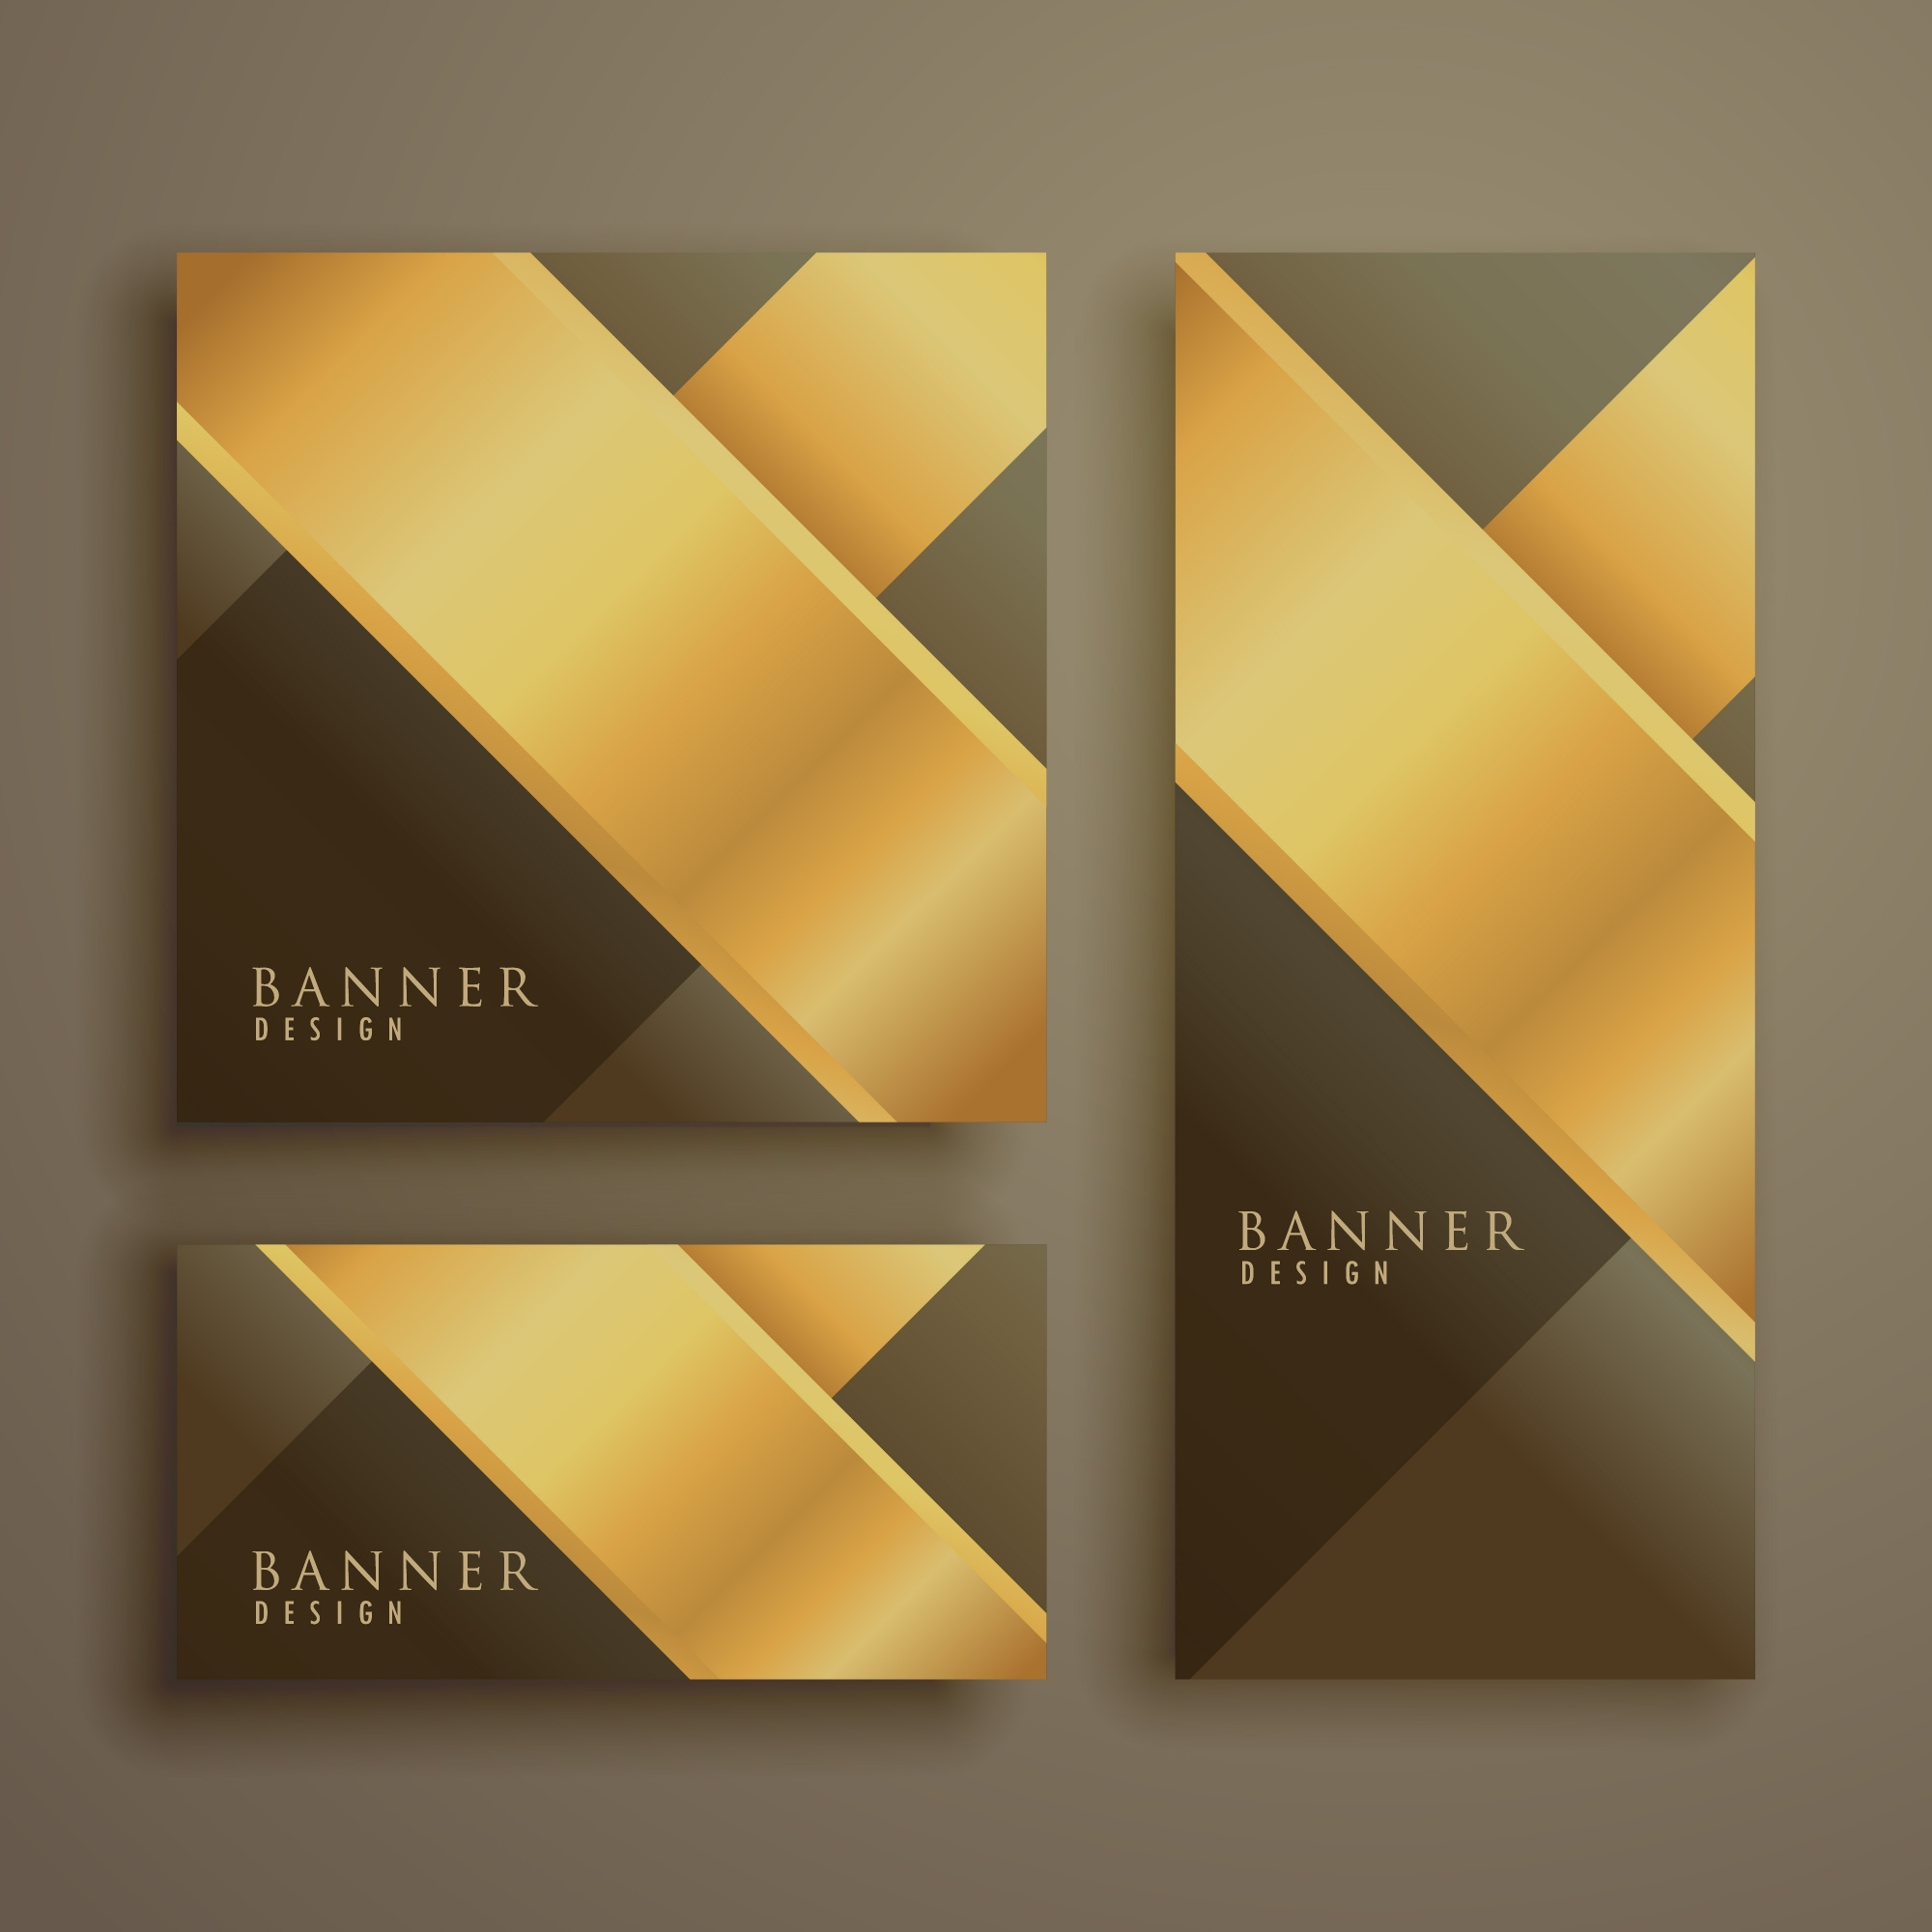 Collection of three luxury banners in different shapes